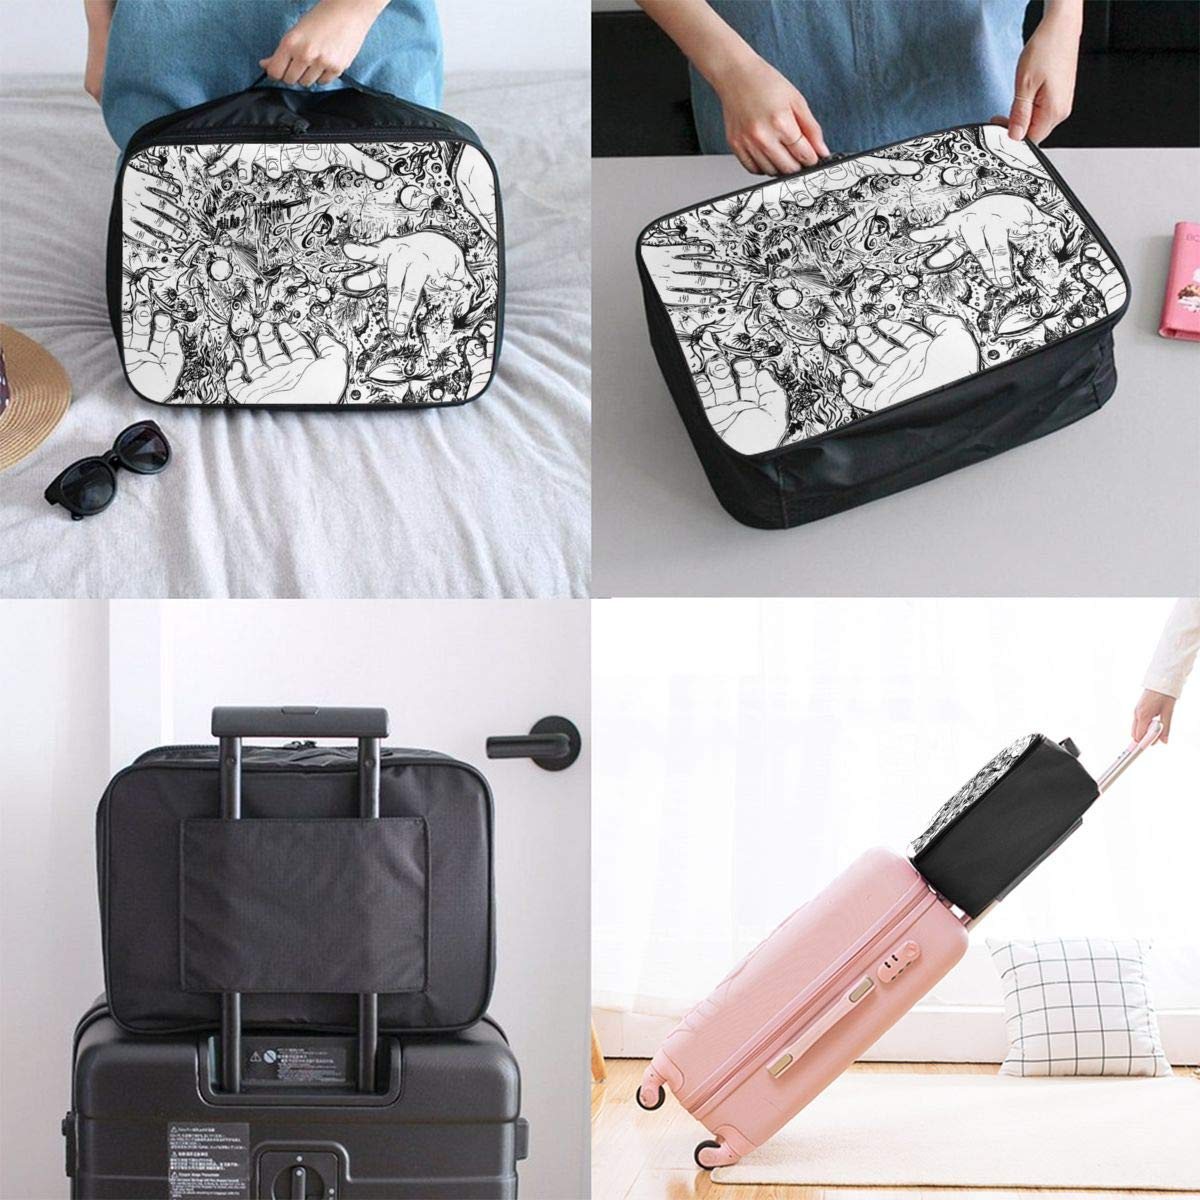 Occult Divination Witch Hands Travel Lightweight Waterproof Folding Storage Portable Luggage Duffle Tote Bag Large Capacity In Trolley Handle Bags 6x11x15 Inch